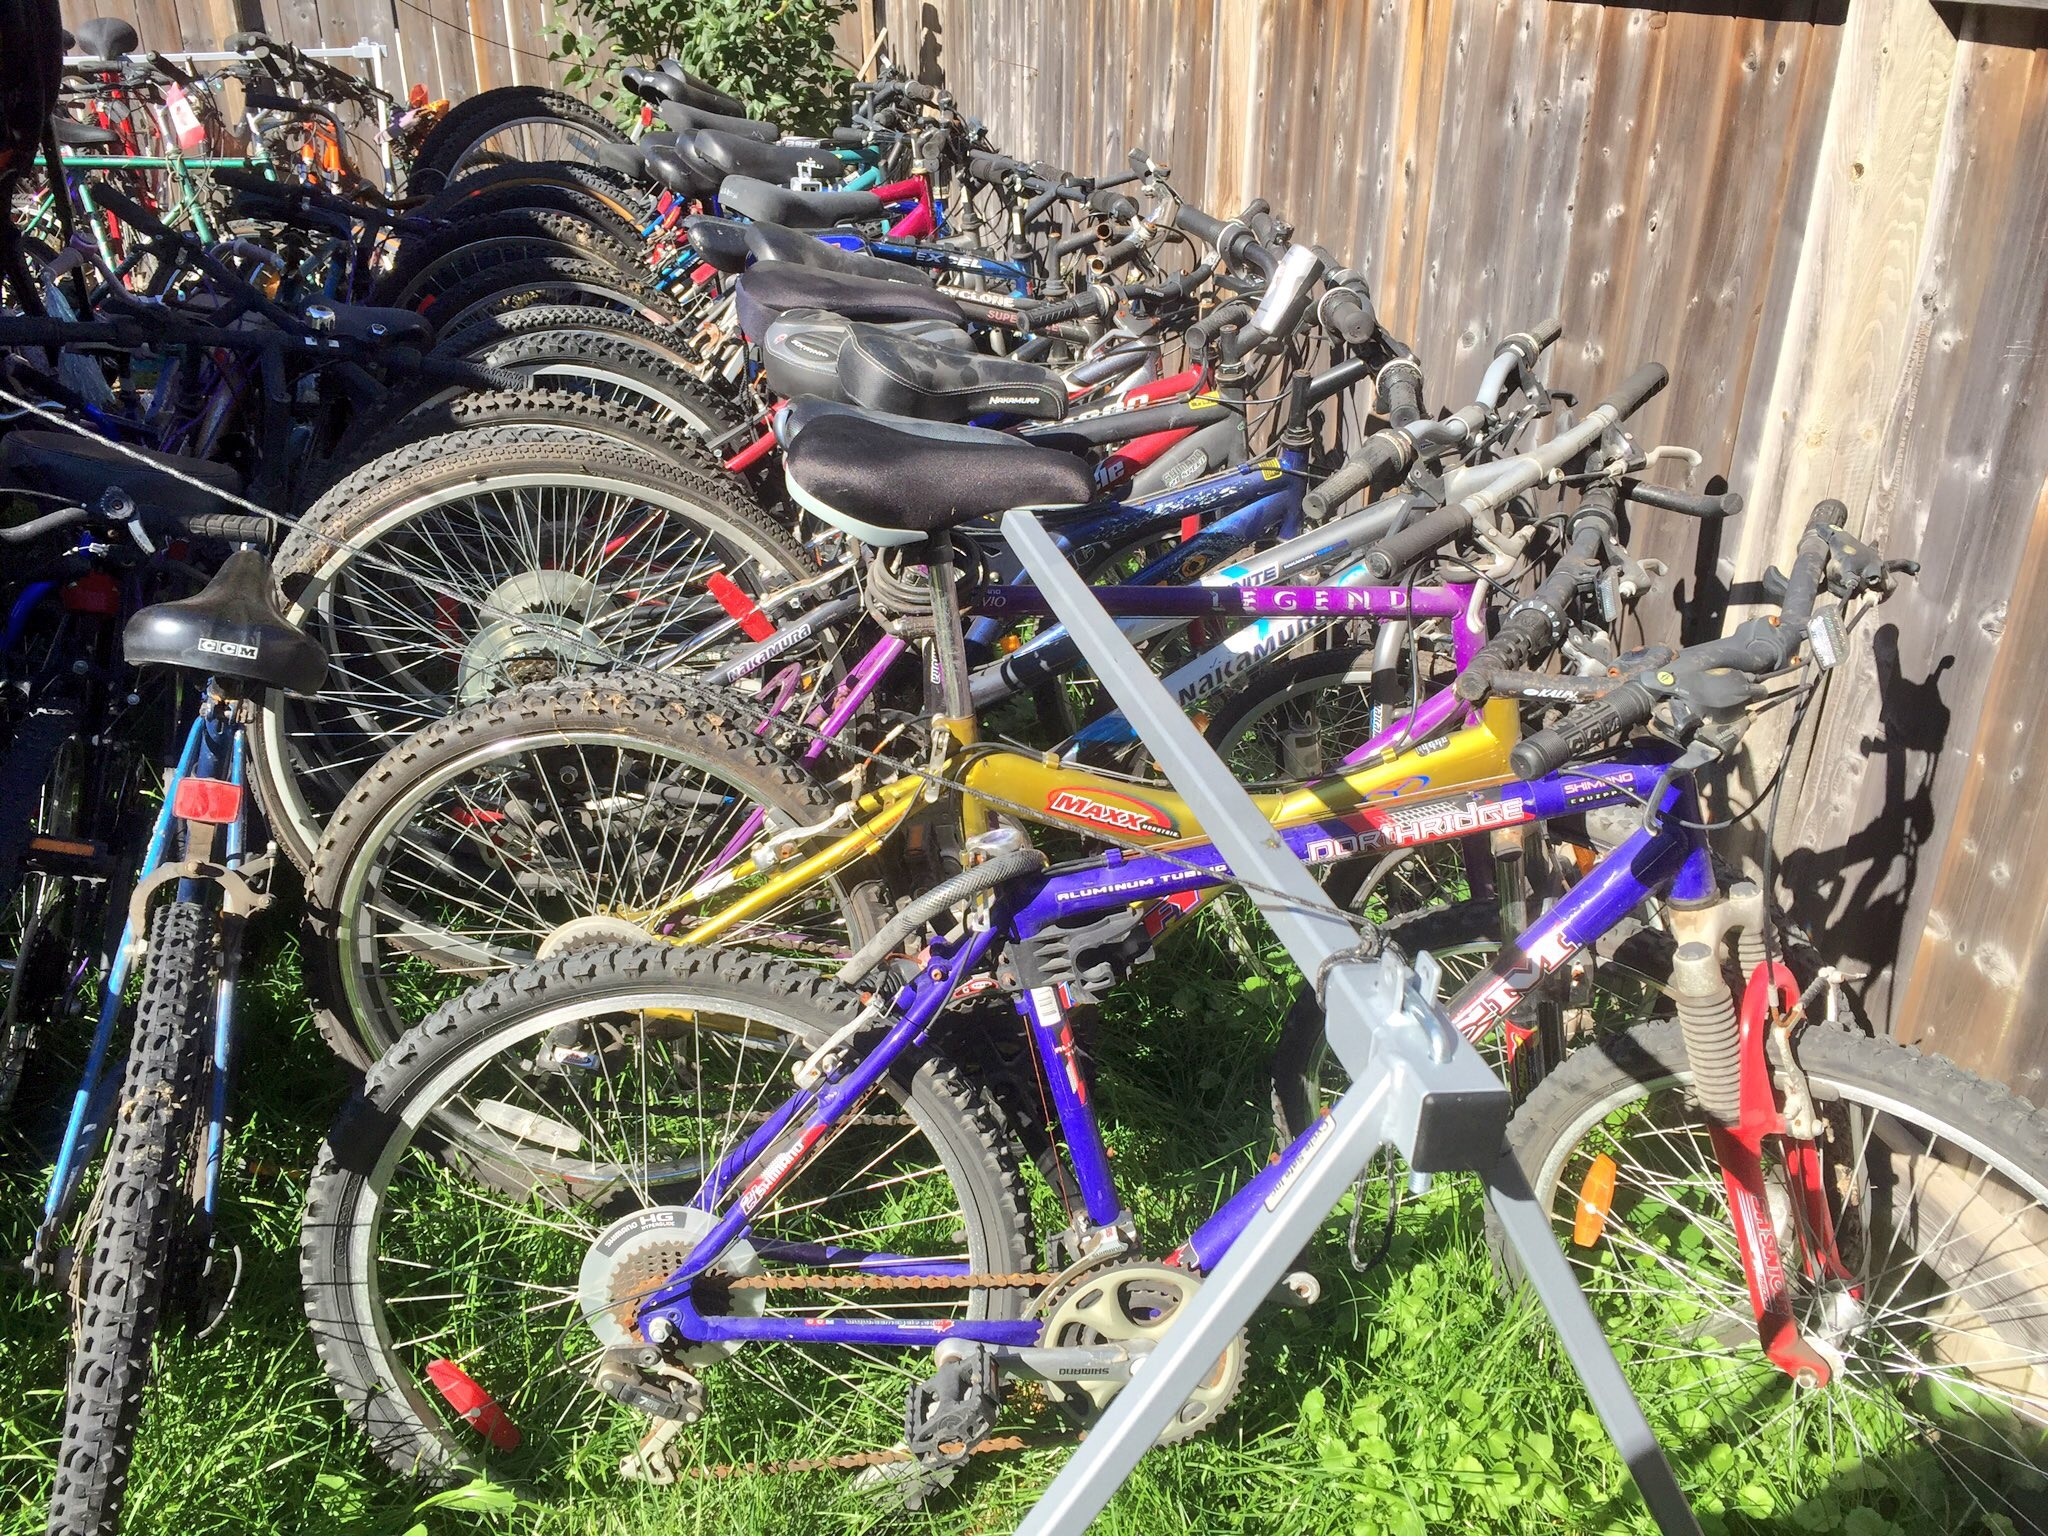 Big Bike Giveaway aims to end cycle of poverty in London